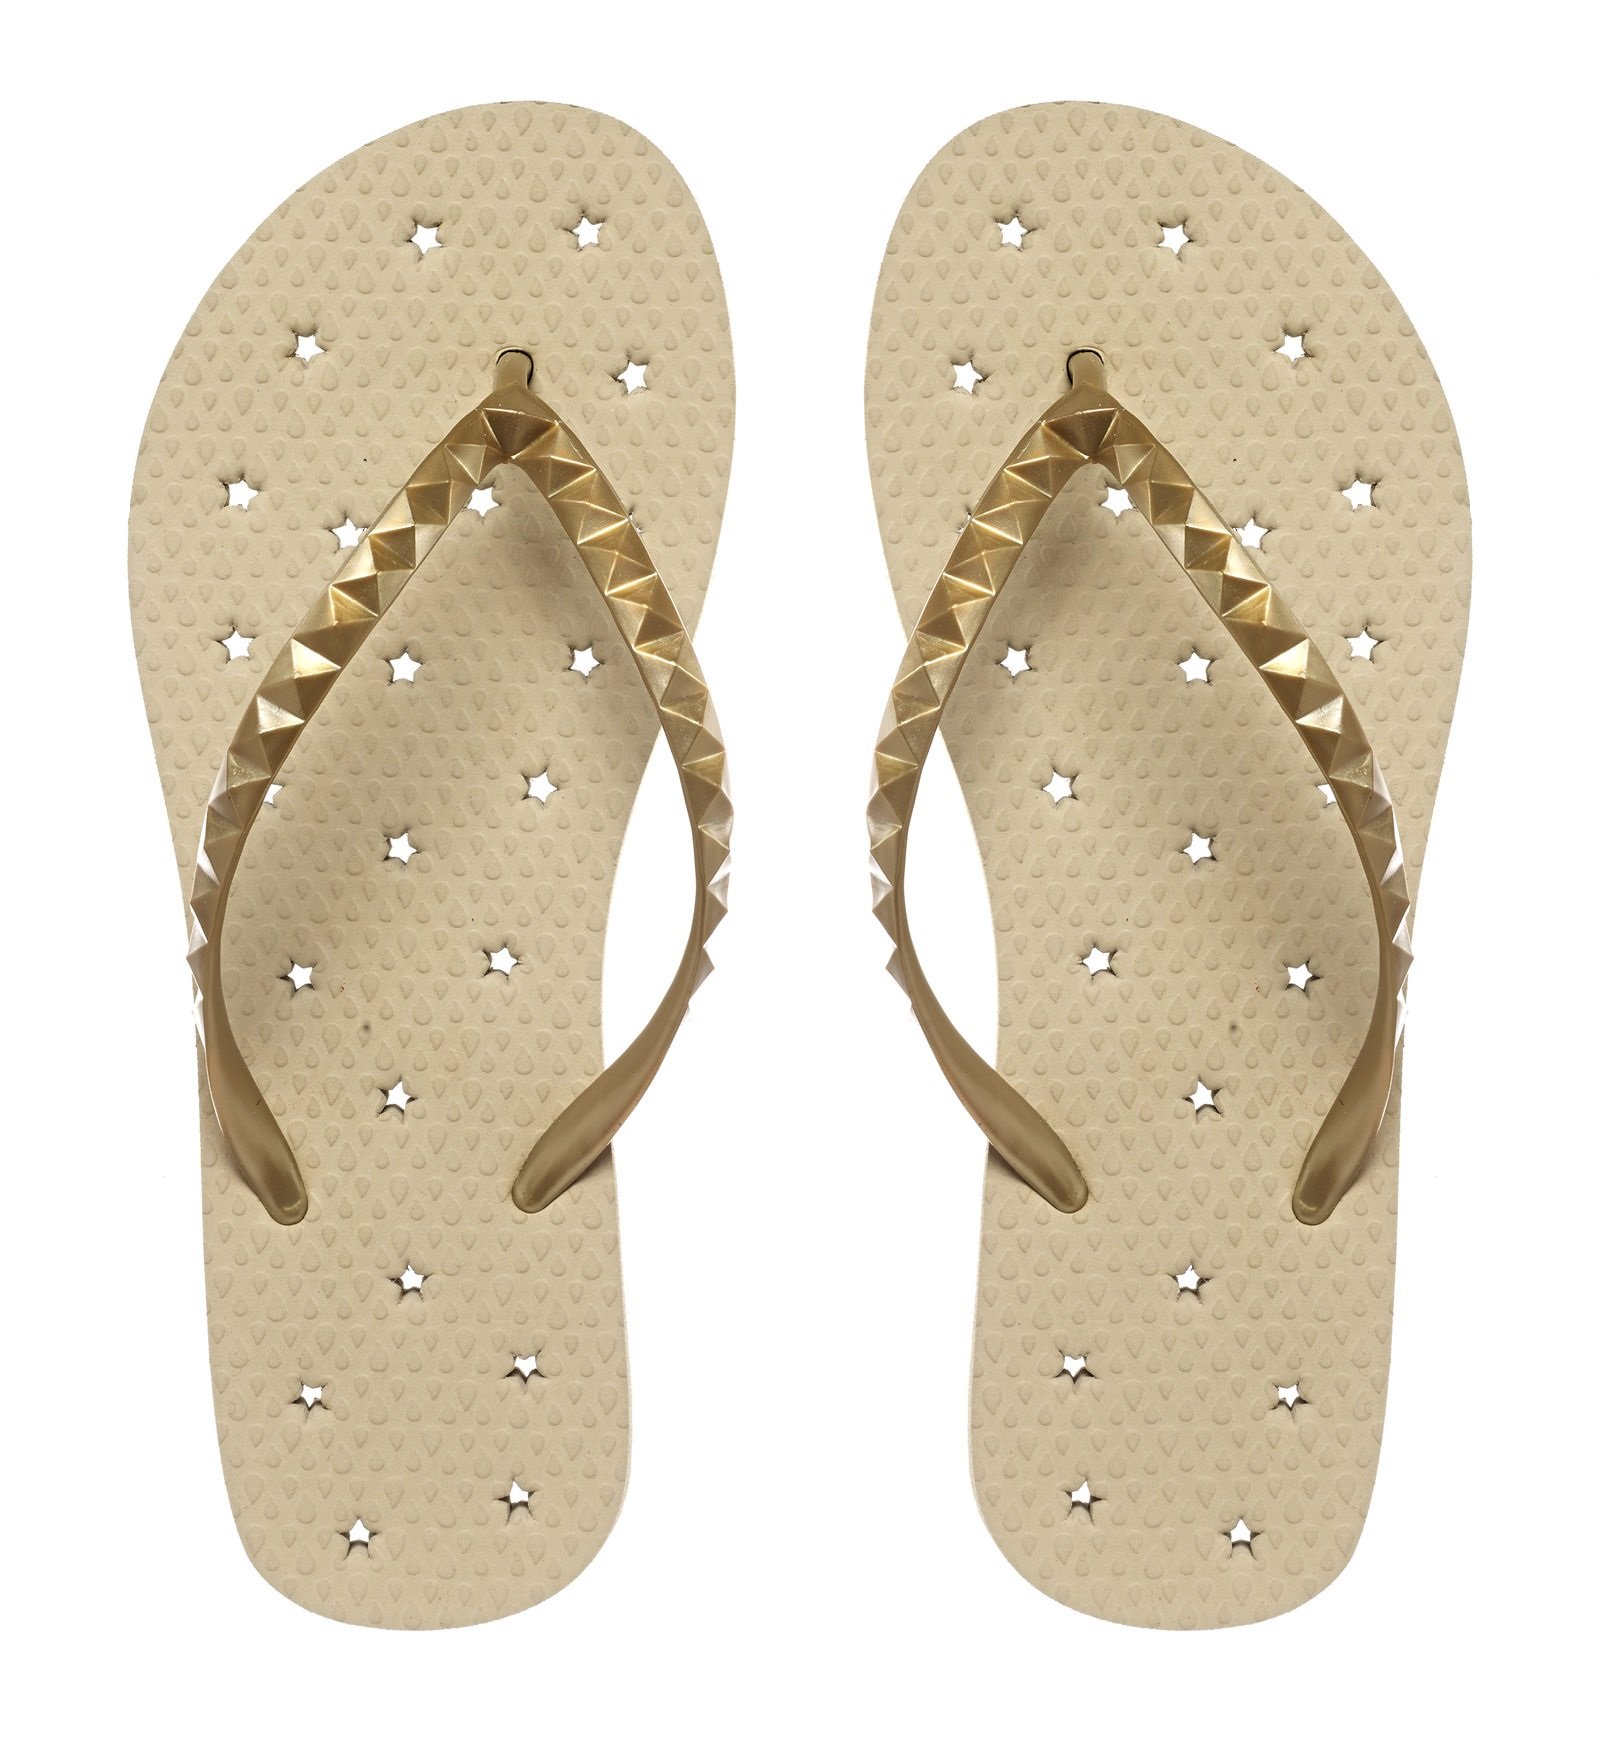 Showaflops Womens' Antimicrobial Shower & Water Sandals for Pool, Beach, Dorm and Gym - Golden Sand 9/10